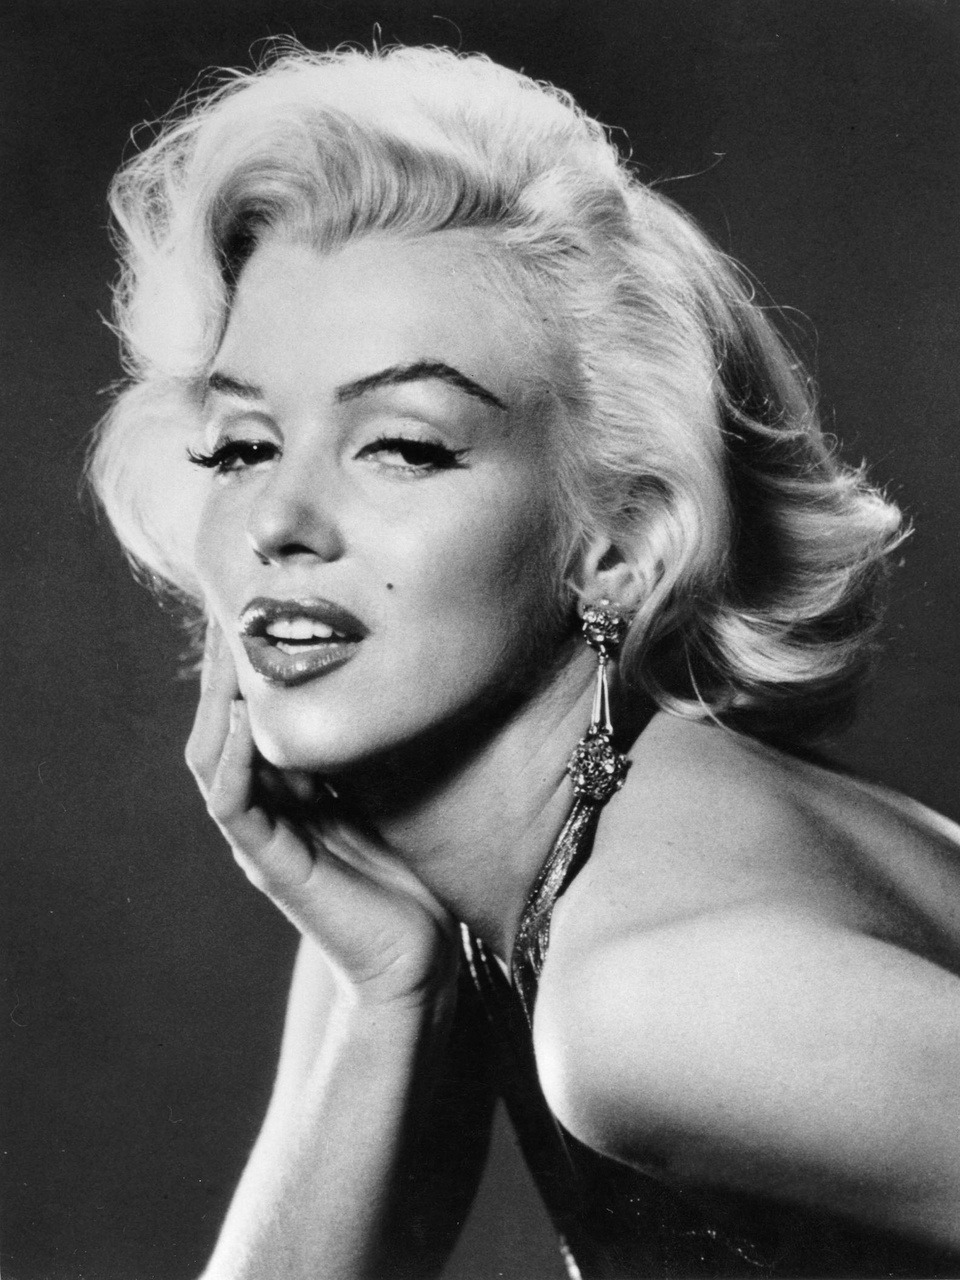 "Marilyn Monroe, la diva di sempre! Cerchi in casa!   -   Circles at home!  ______________________________ Ruote Latina        Ruote Italia Il portale ospita aziende, uomini e piloti e vuol essere un luogo di incontro tra quanti vivono le ""ruote"", qualunque esse siano, con passione, consci del valore che l'invenzione della ruota ha rappresentato per l'umanità tutta. Seguiteci con attenzione, non ve ne pentirete. Wheels Latina      Wheels  Italy The portal hosts companies, pilots and men and wishes to become a meeting place between those who live the ""wheels"", whatever they are, with passion, conscious of the value that the invention of the wheel has been for all of humanity. Follow carefully, you will not regret.  Please Follow: http://www.ruotelatina.com  ruotelatina@gmail.com  GOOD EARTH http://ruoteitalia.tumblr.com/archive  http://www.ferdinandporsche.net http://ruoteitalia-blog.tumblr.com/archive http://leosimonelli.tumblr.com/archive http://fabiodamiani.tumblr.com/archive http://italiaunoweb.tumblr.com/archive http://rossoferrari.tumblr.com/archive http://mitomotori.tumblr.com/archive http://motodays-2012.tumblr.com/archive  http://pianetaruote.tumblr.com/"